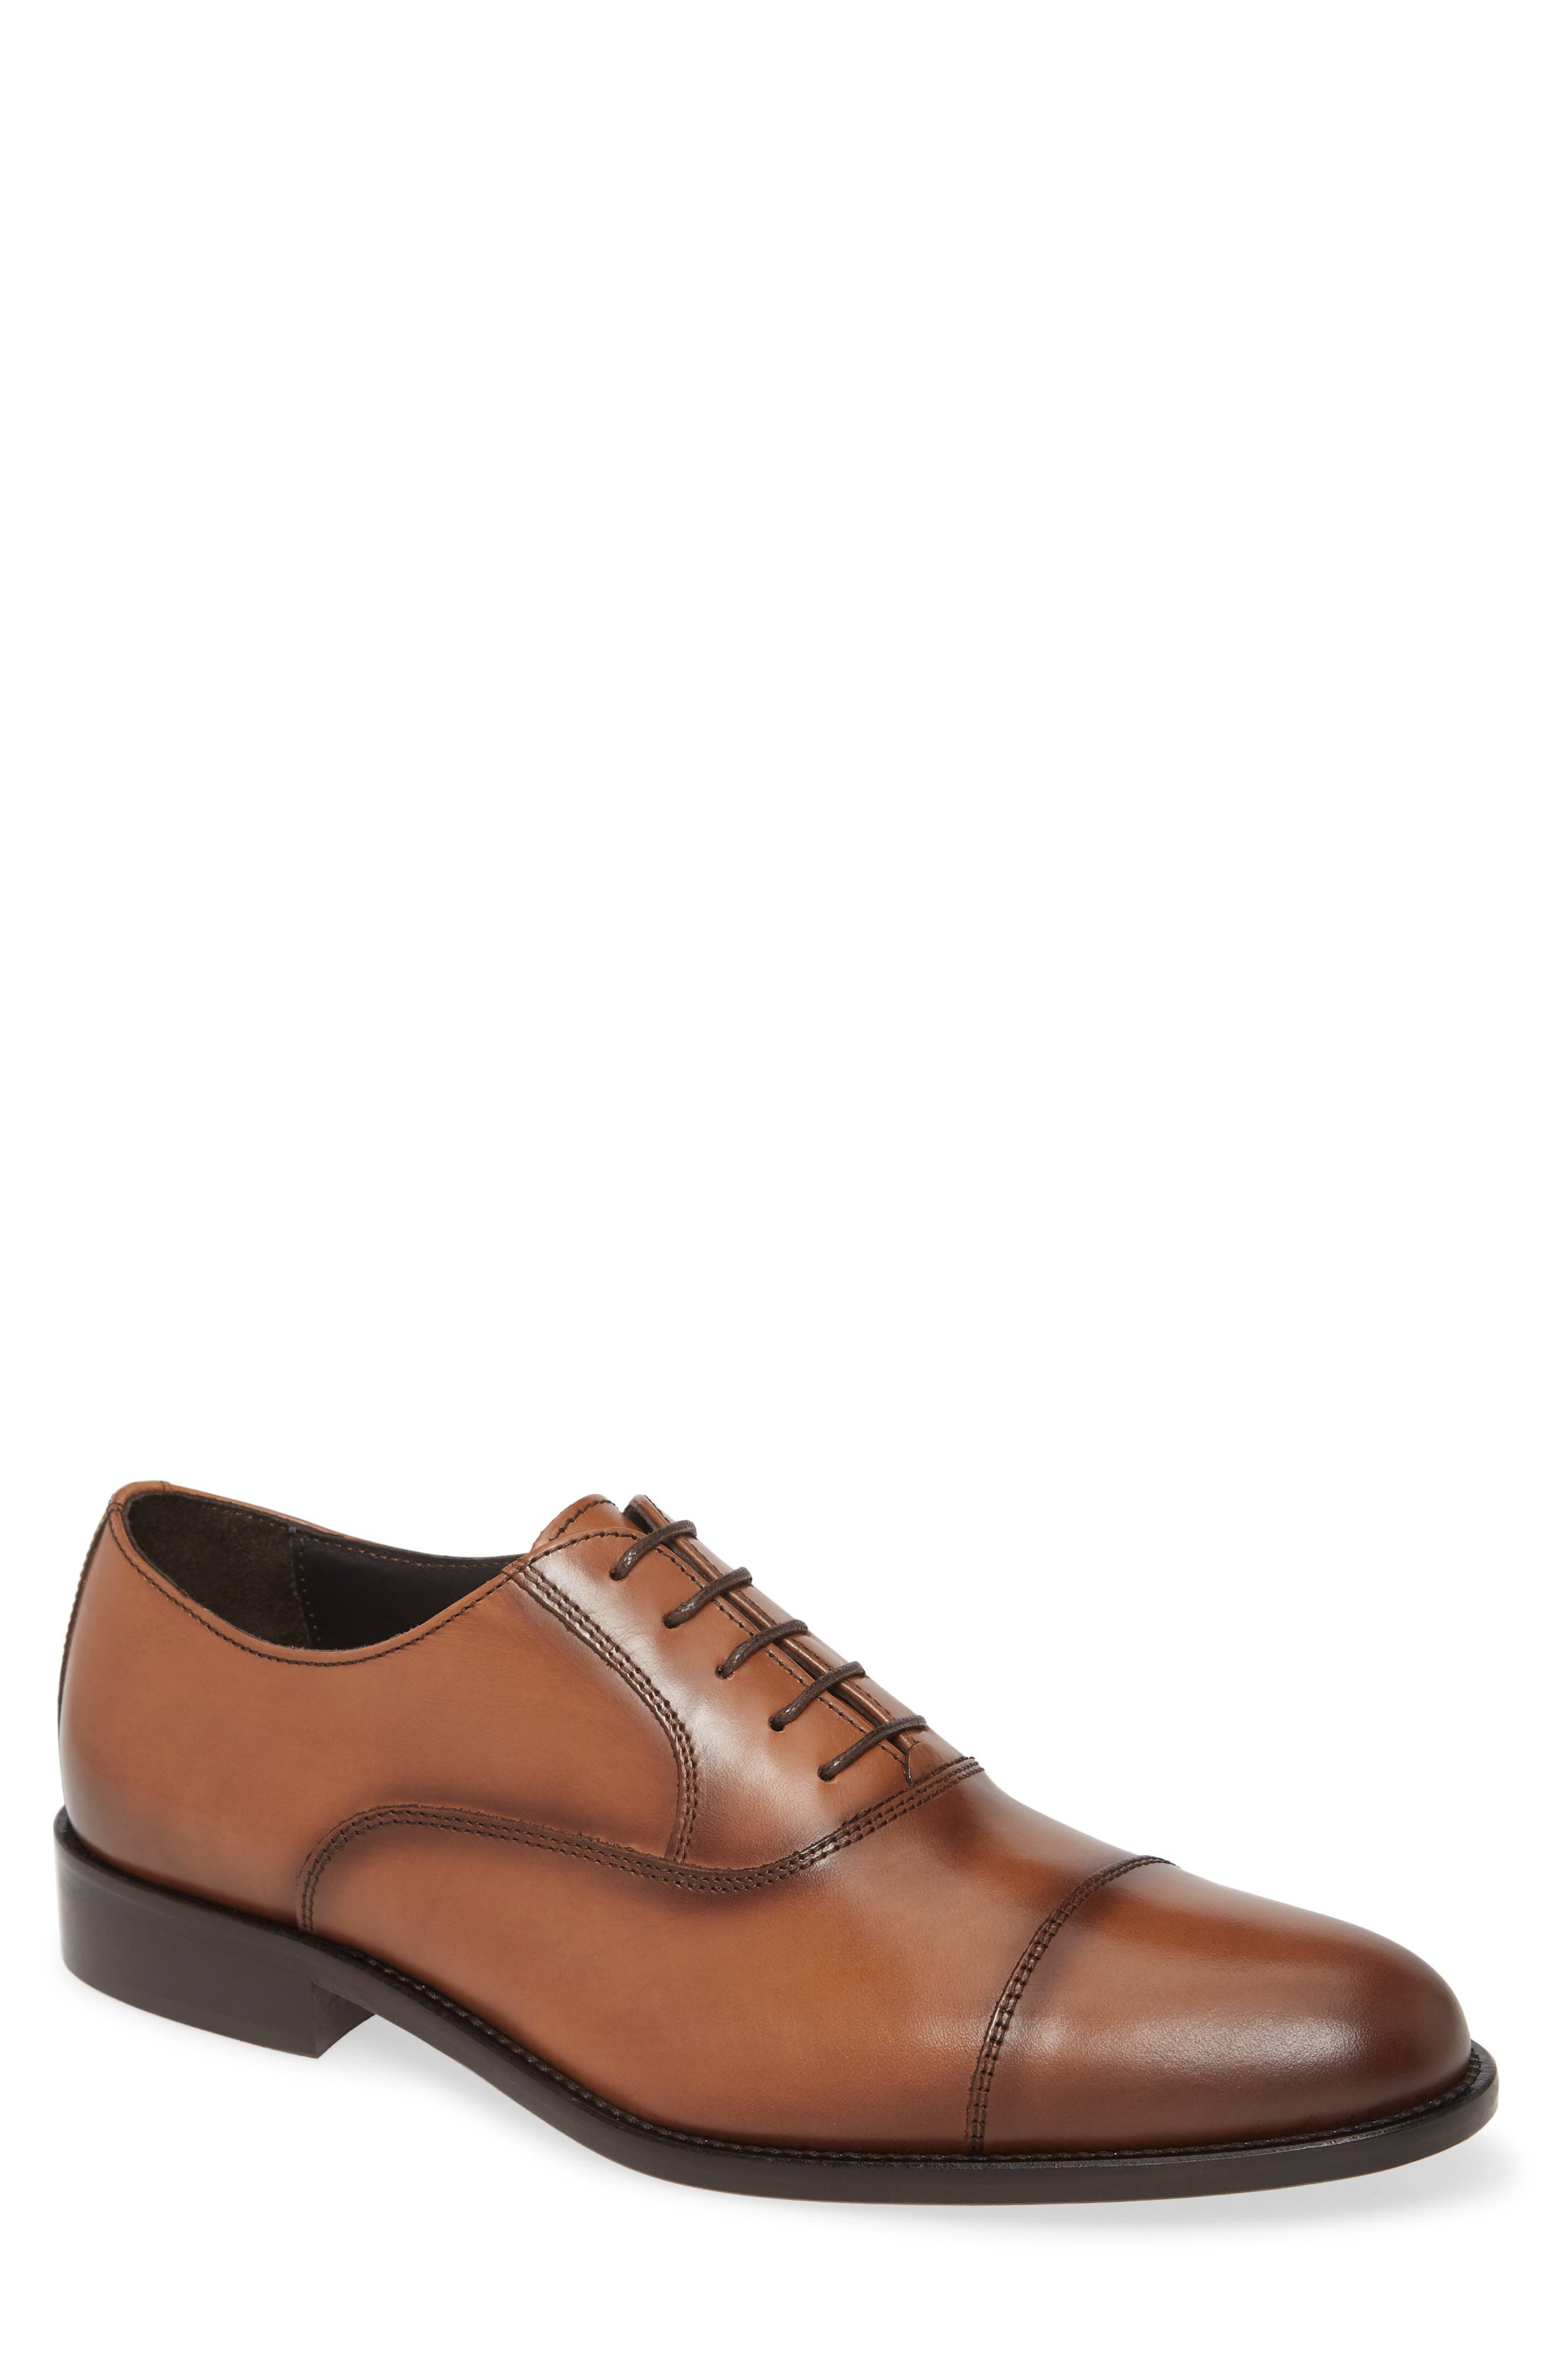 Image of To Boot New York Caulfield Oxford